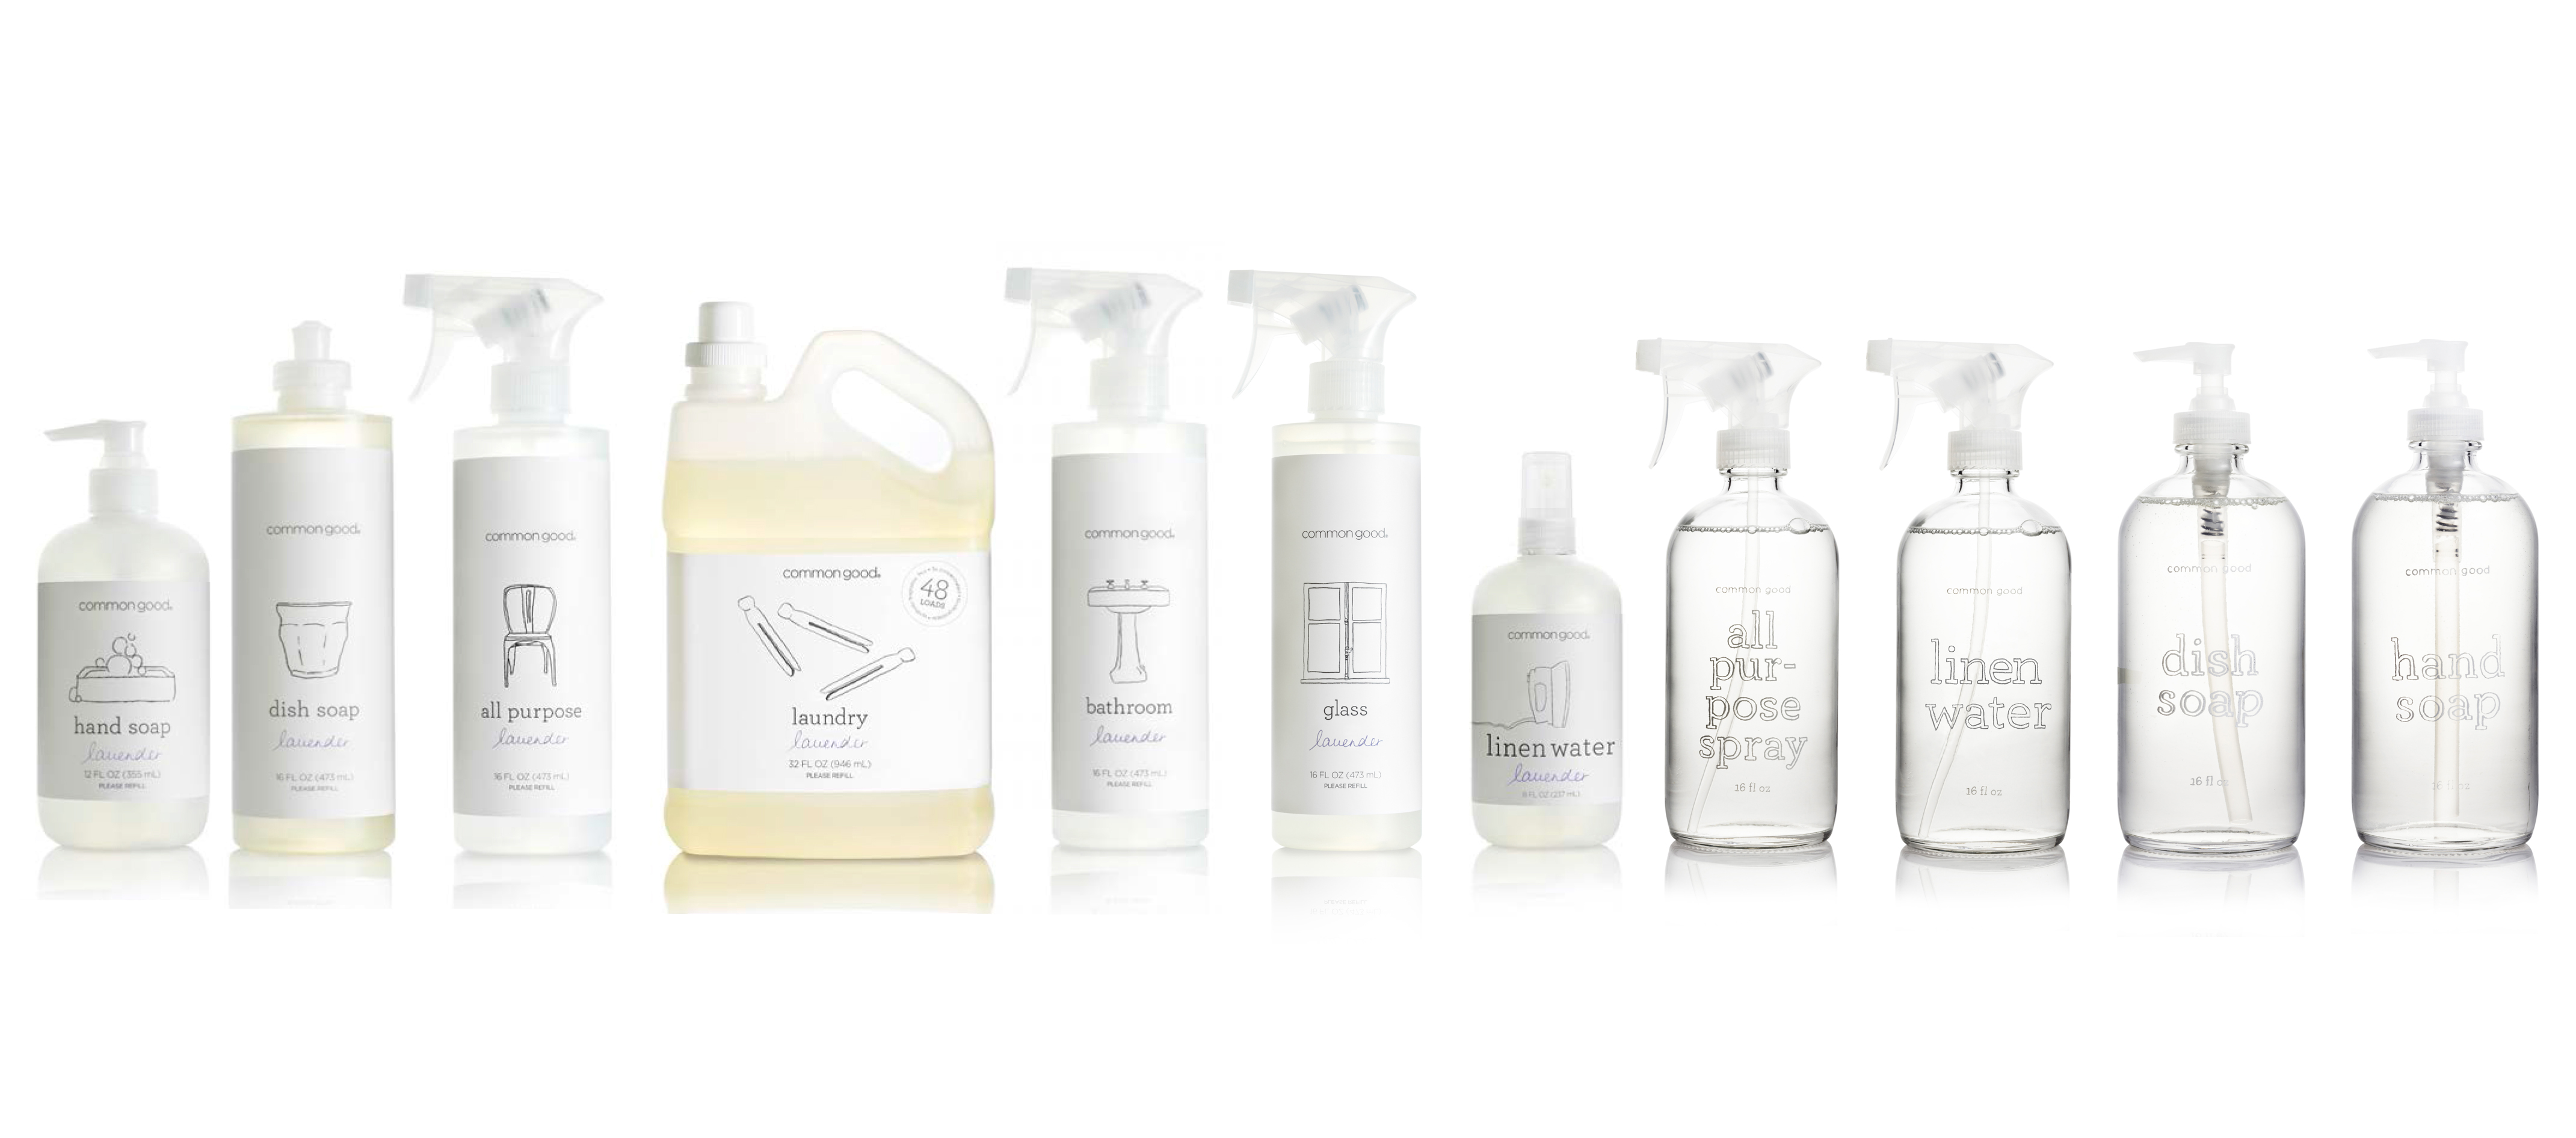 Non-toxic cleaning products current range